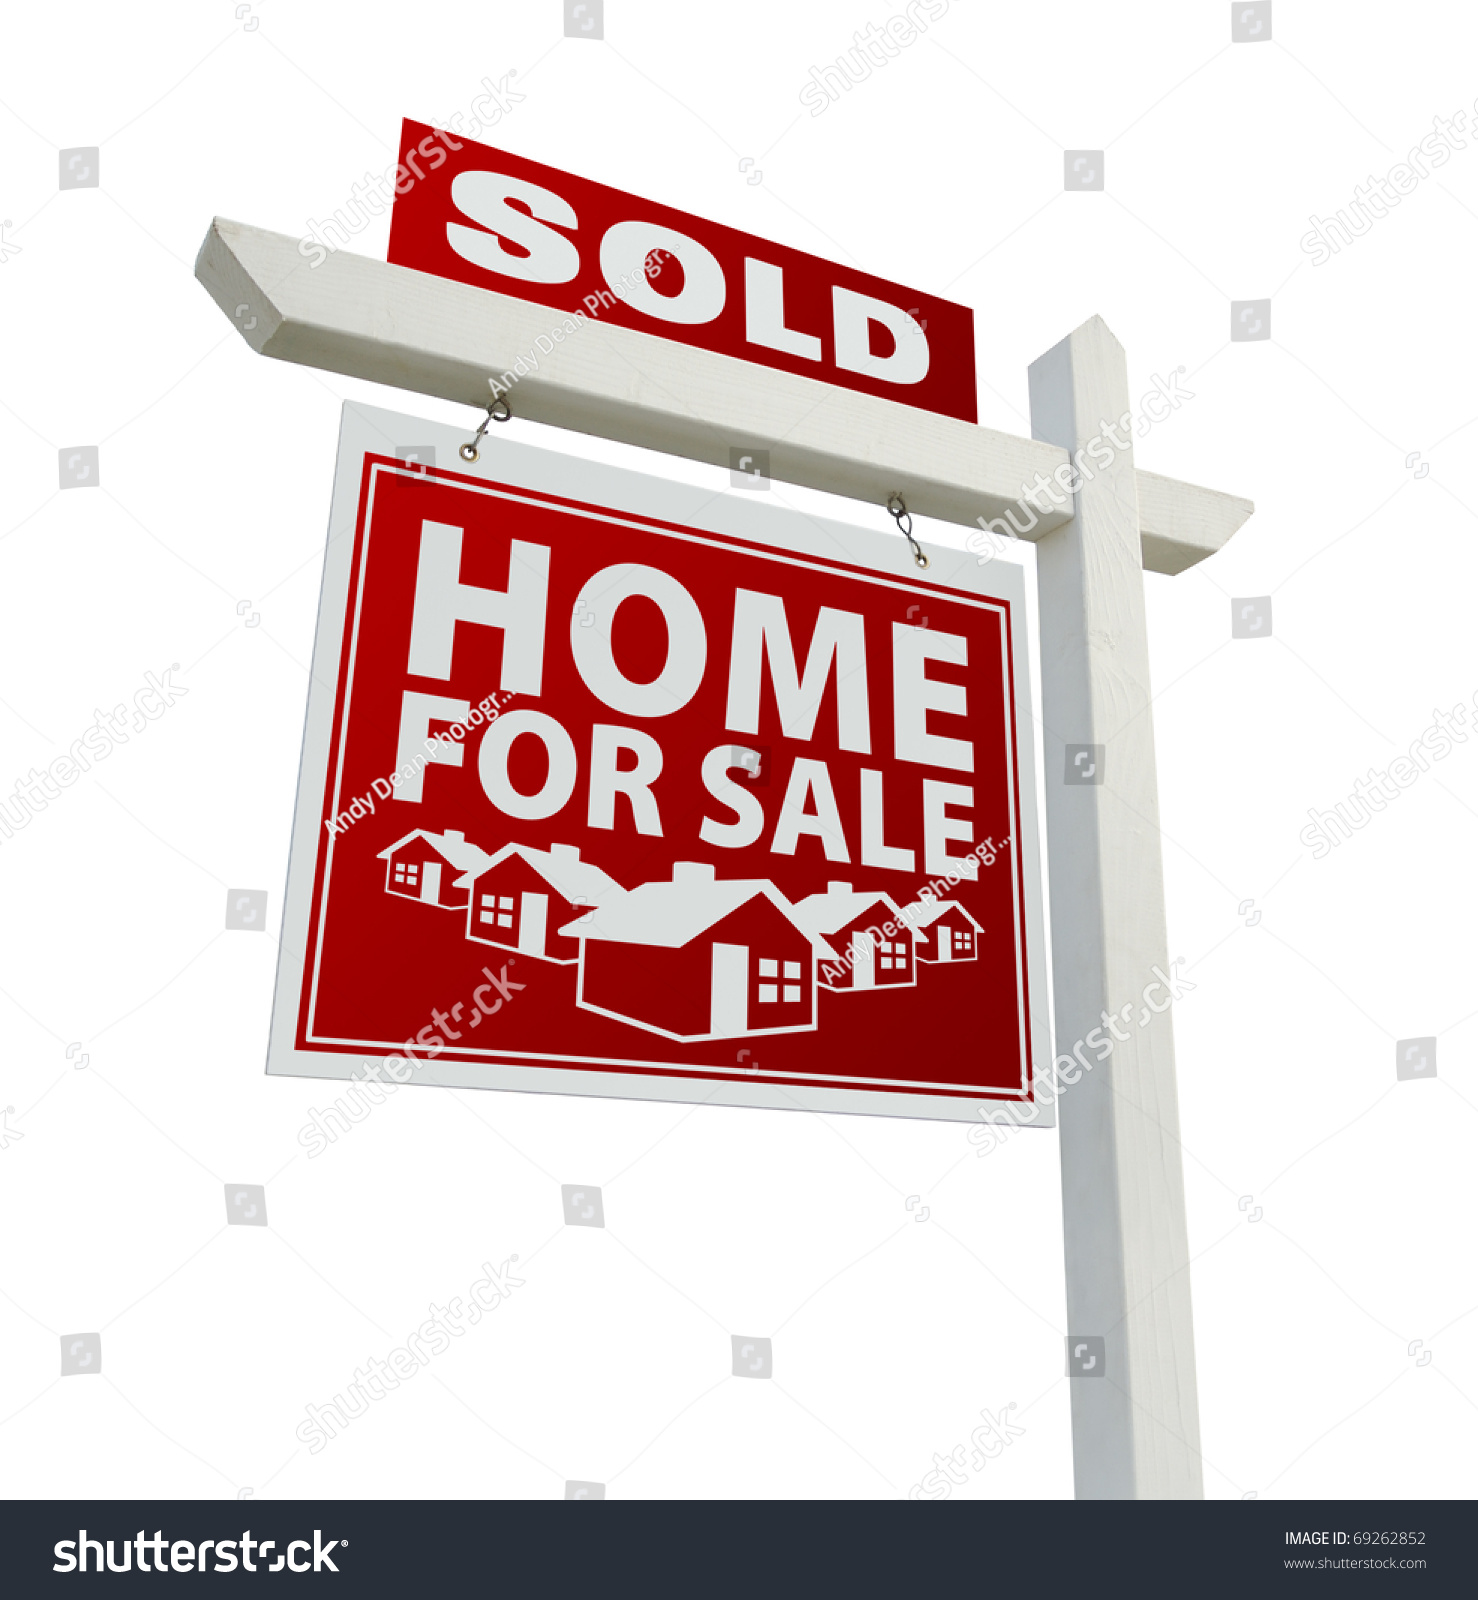 Z Homes For Sale Stock Photo Red Sold Home For Sale Real